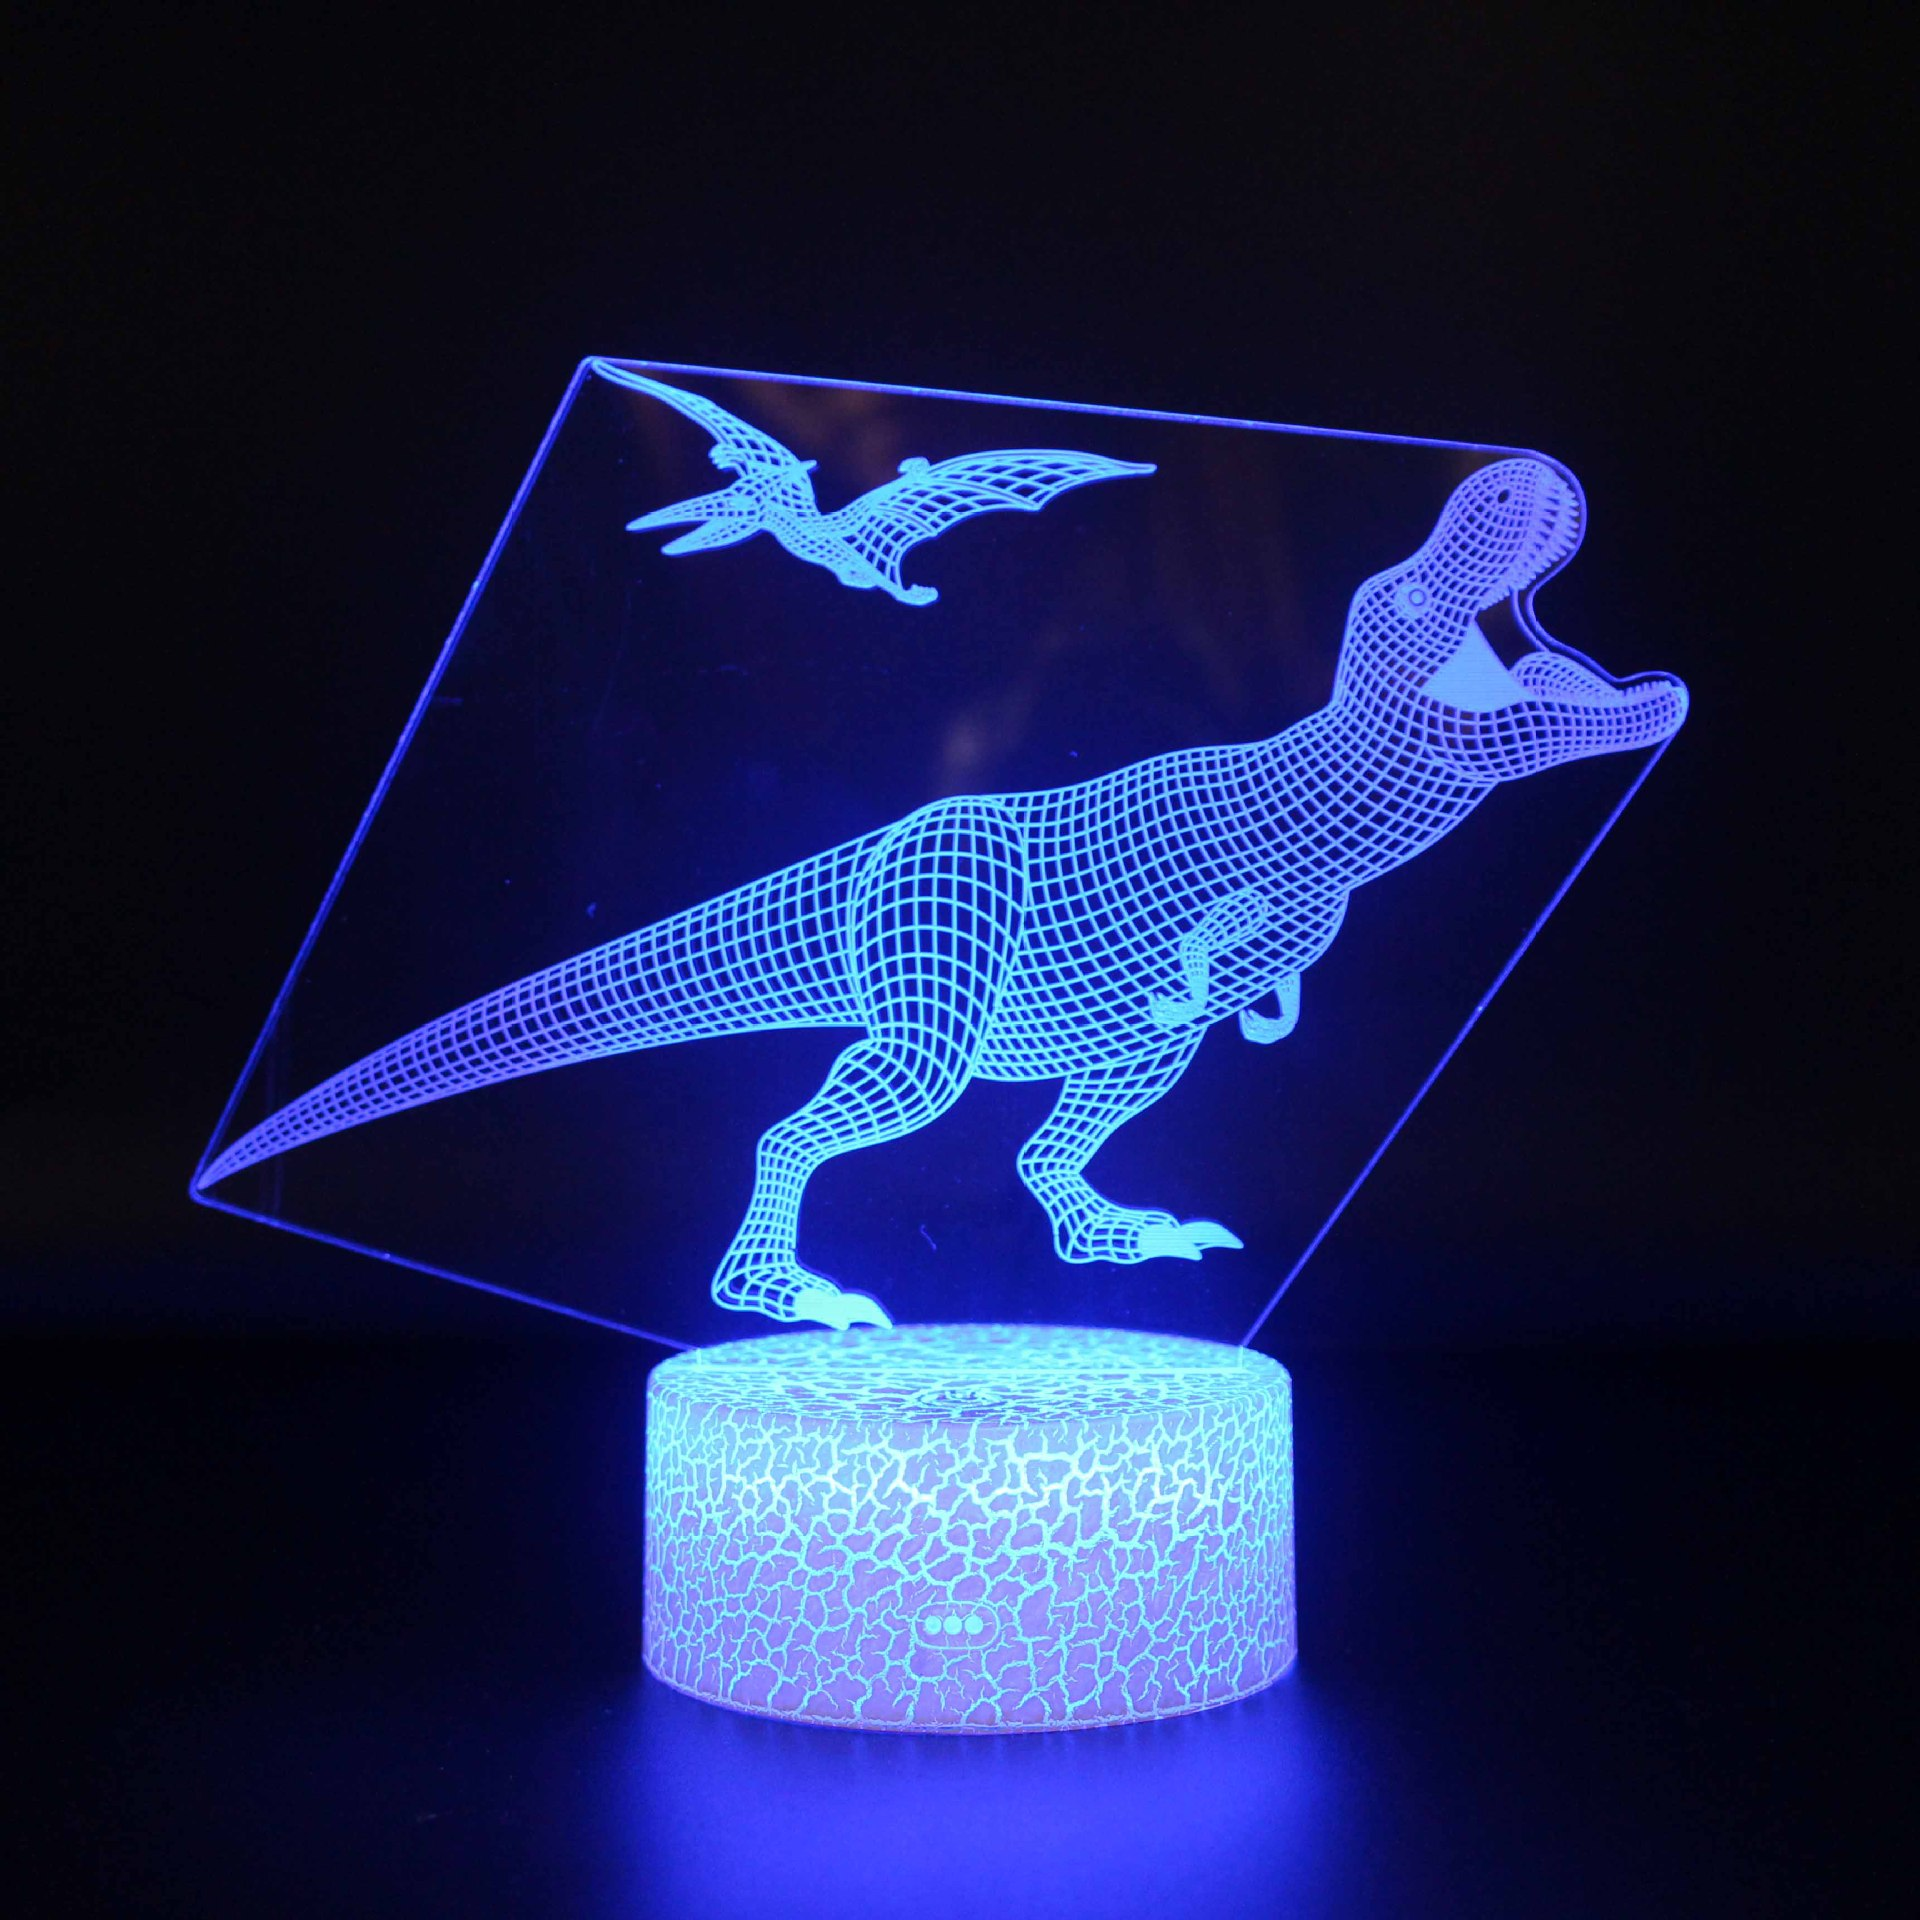 Dinosaur 3D LED Illusion Lamp 3D Optical Illusion Lights 7 Color Multicolored USB Home Decoration Color Changeable Lamp For Boys